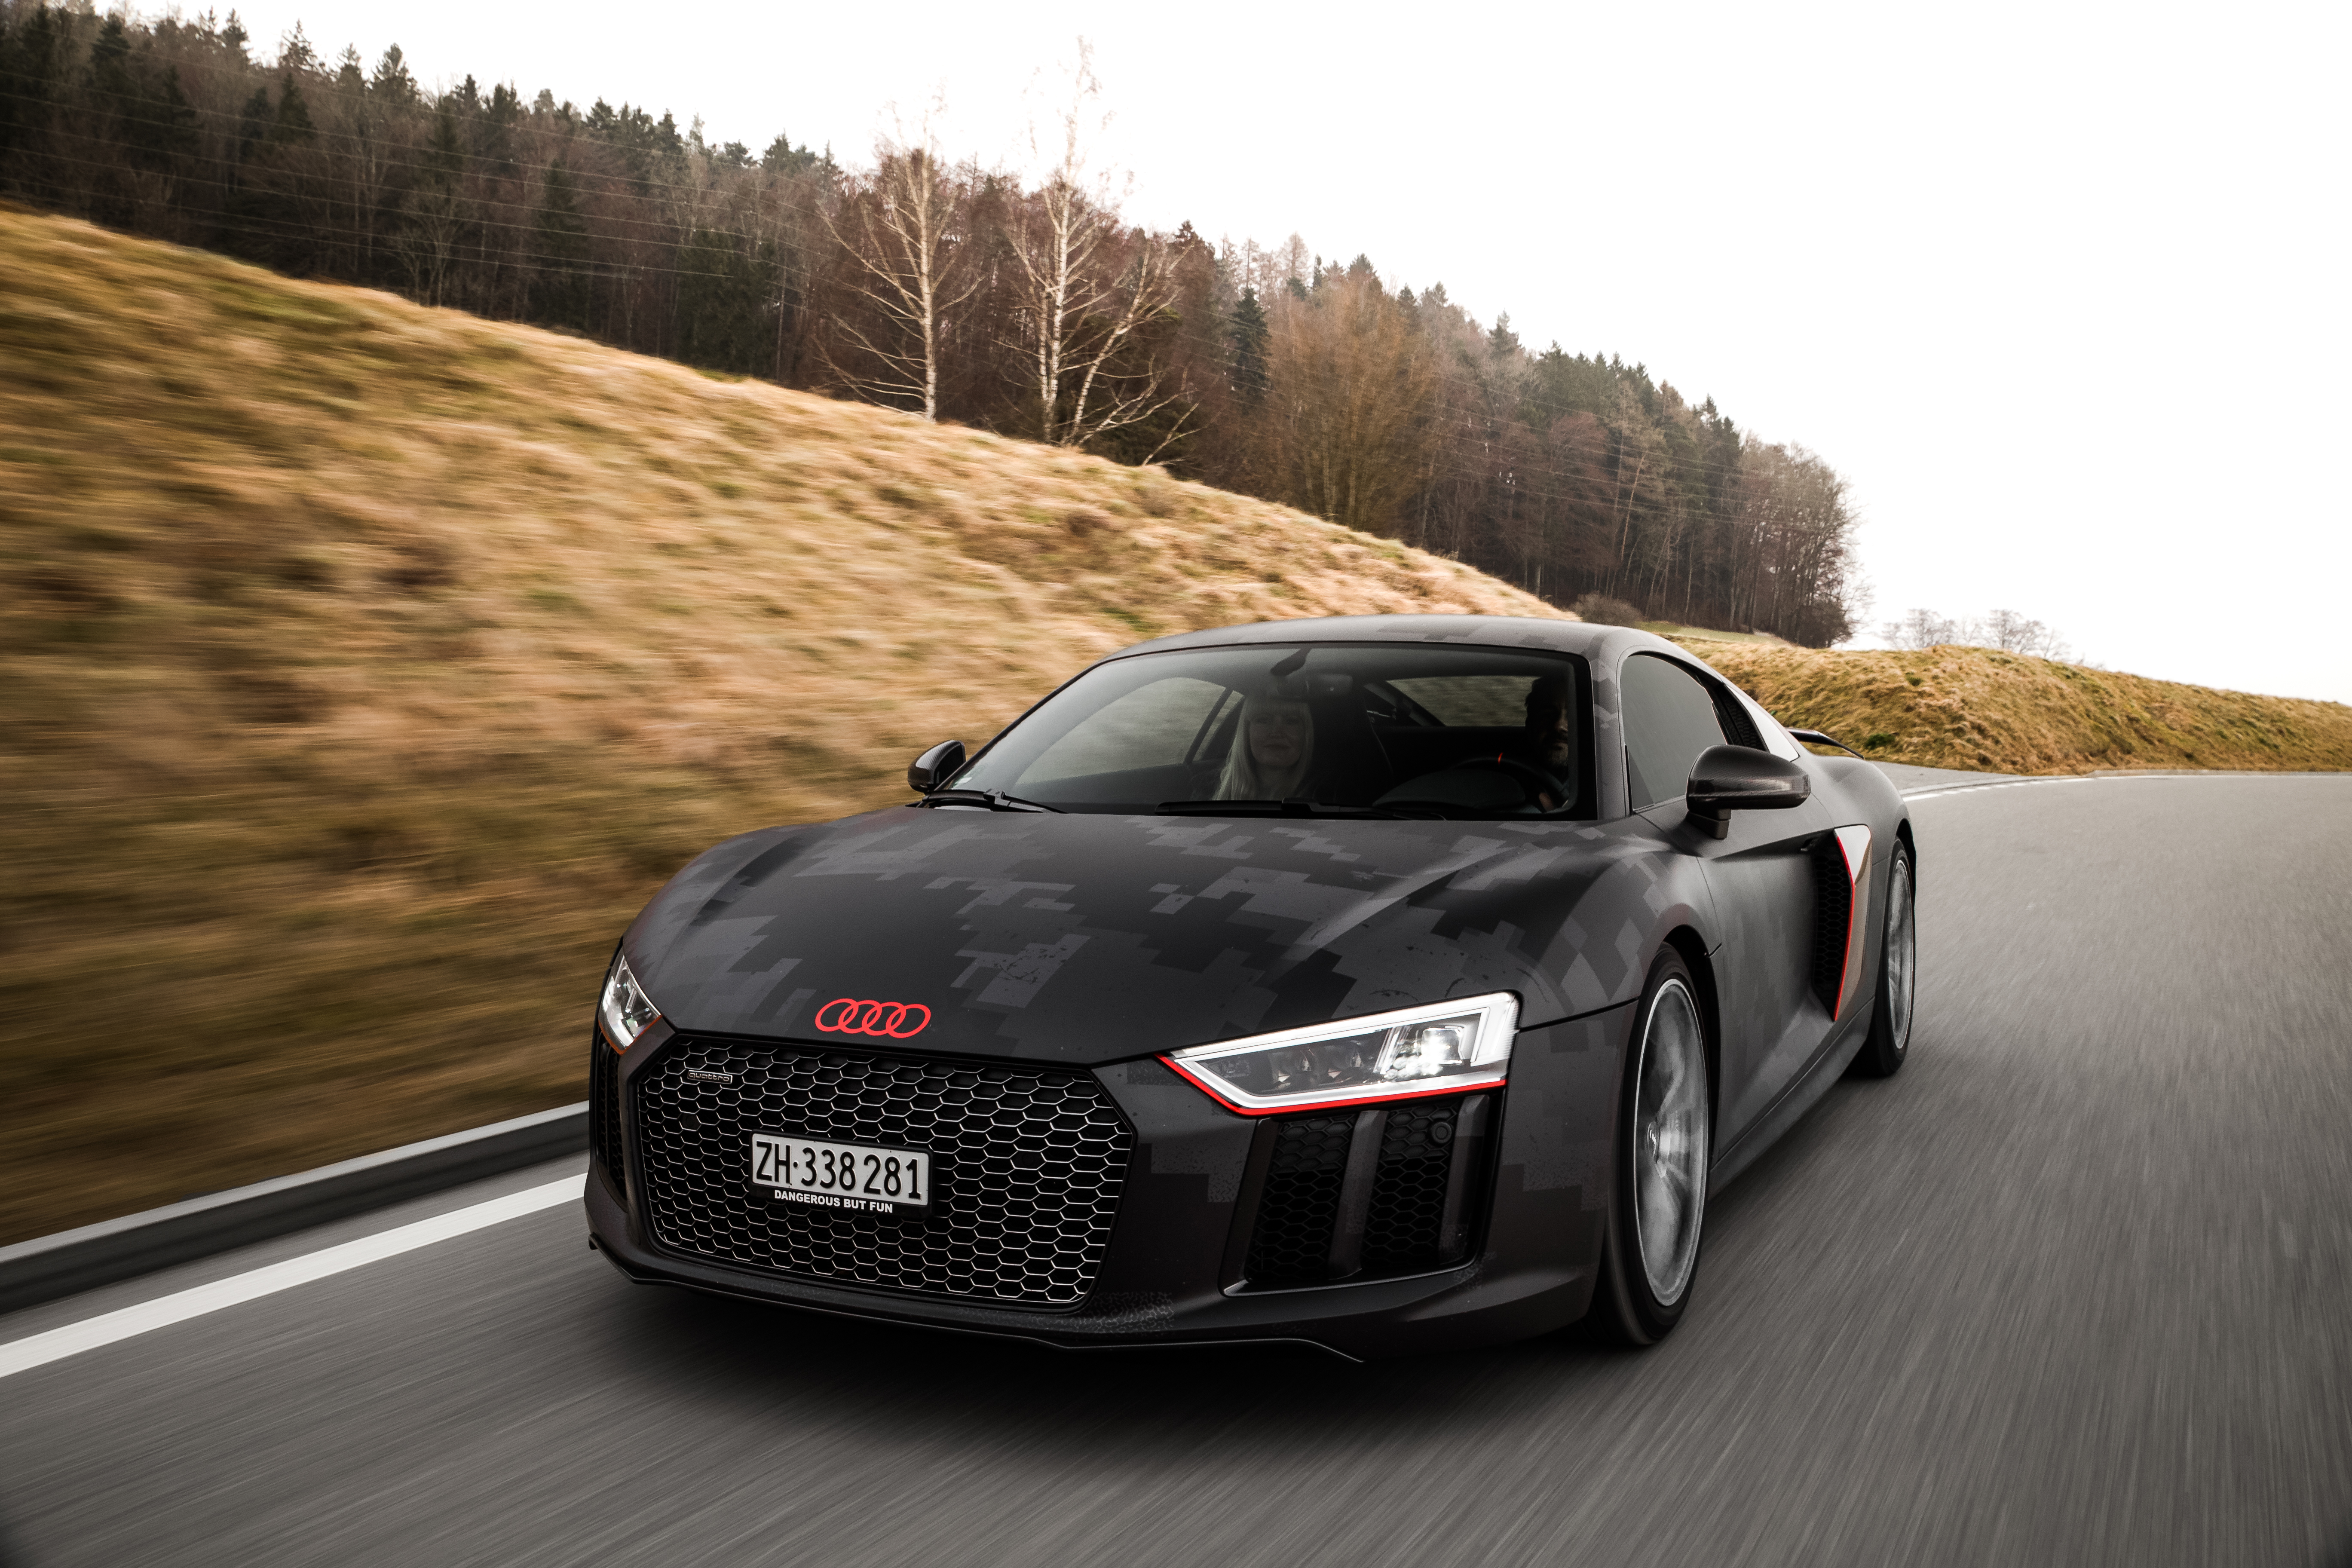 Black Audi R8 V10 Plus Hd Cars 4k Wallpapers Images Backgrounds Photos And Pictures